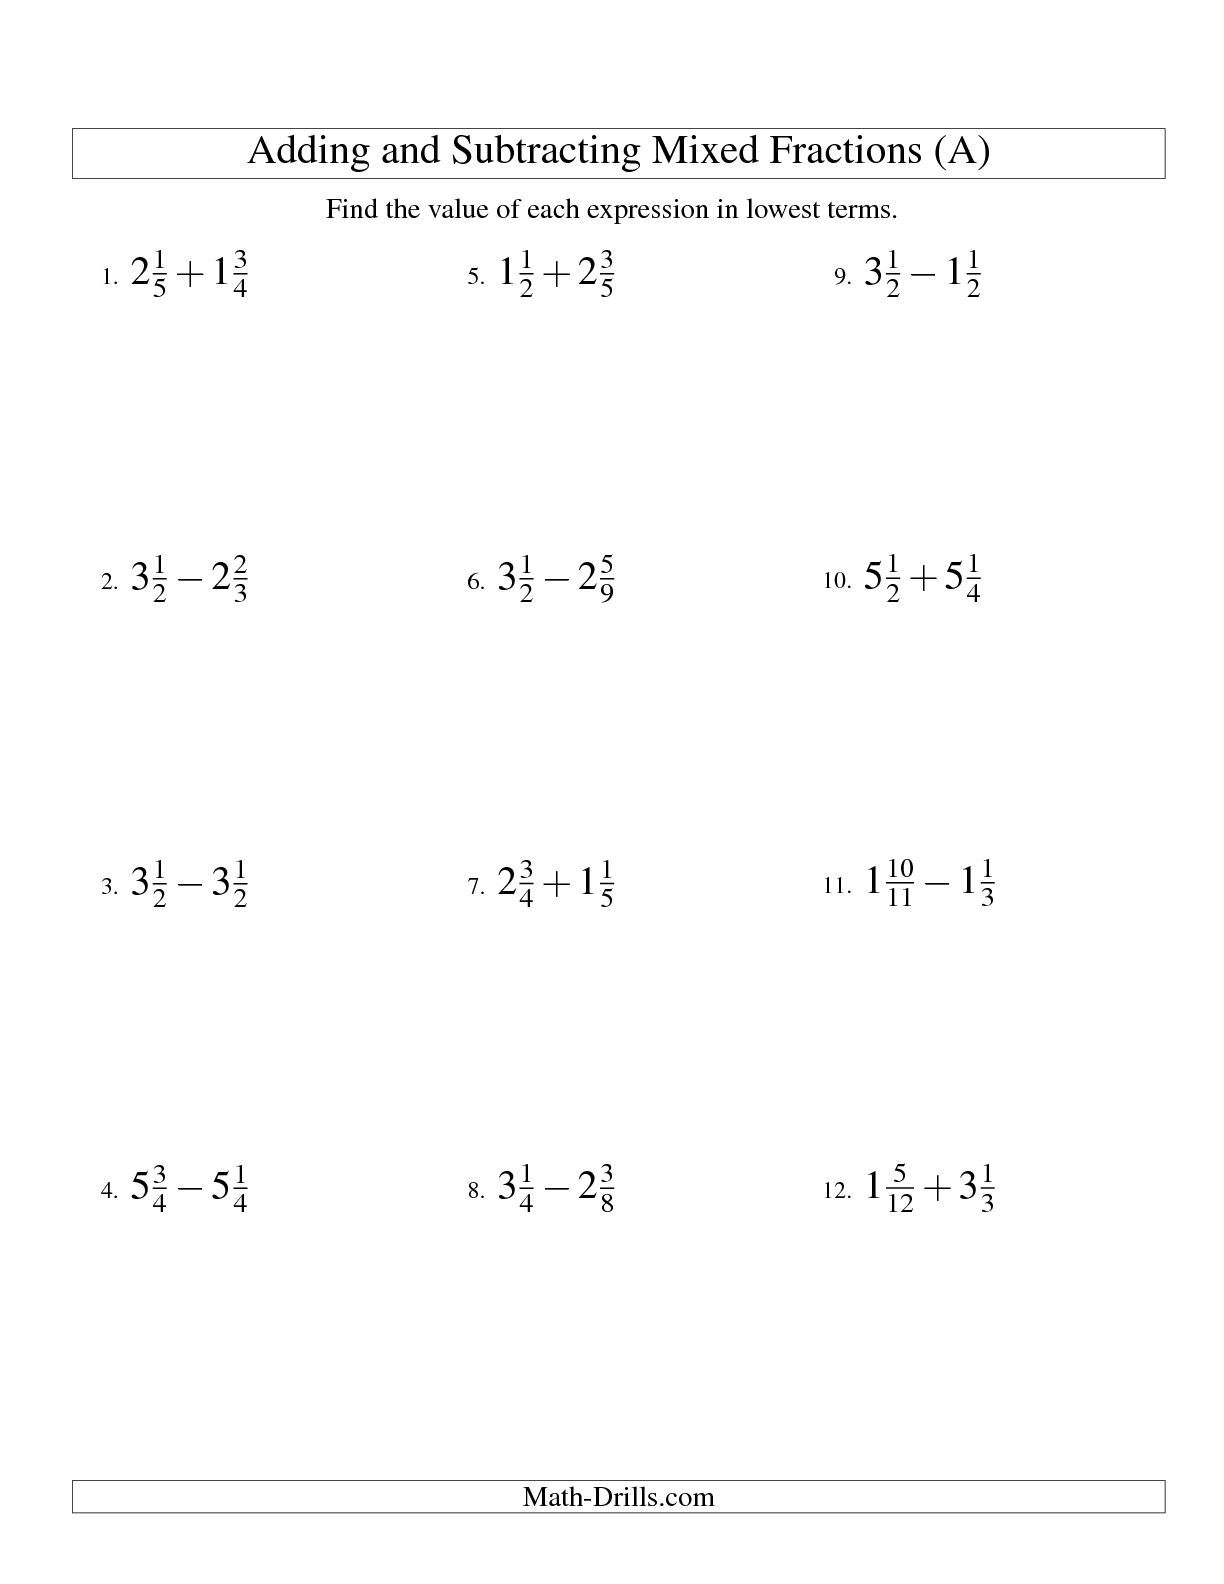 medium resolution of The Adding and Subtracting Mixed Fractions (A) math worksheet from the Fractions  Worksheet page at Math-D…   Fractions worksheets